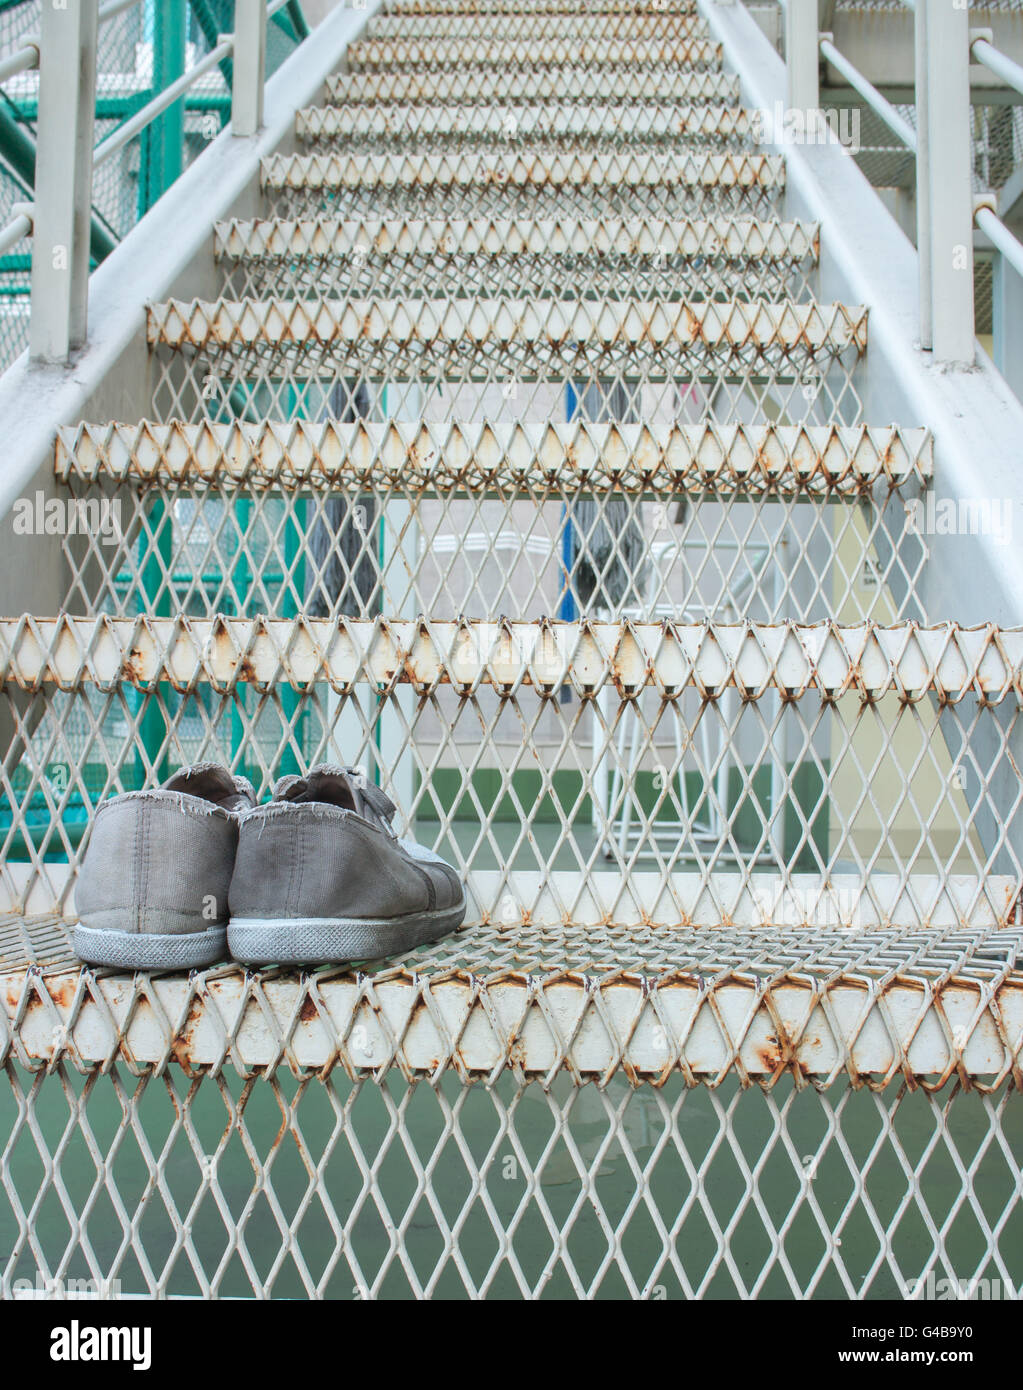 sneakers  on the stairs. Making first step. - Stock Image